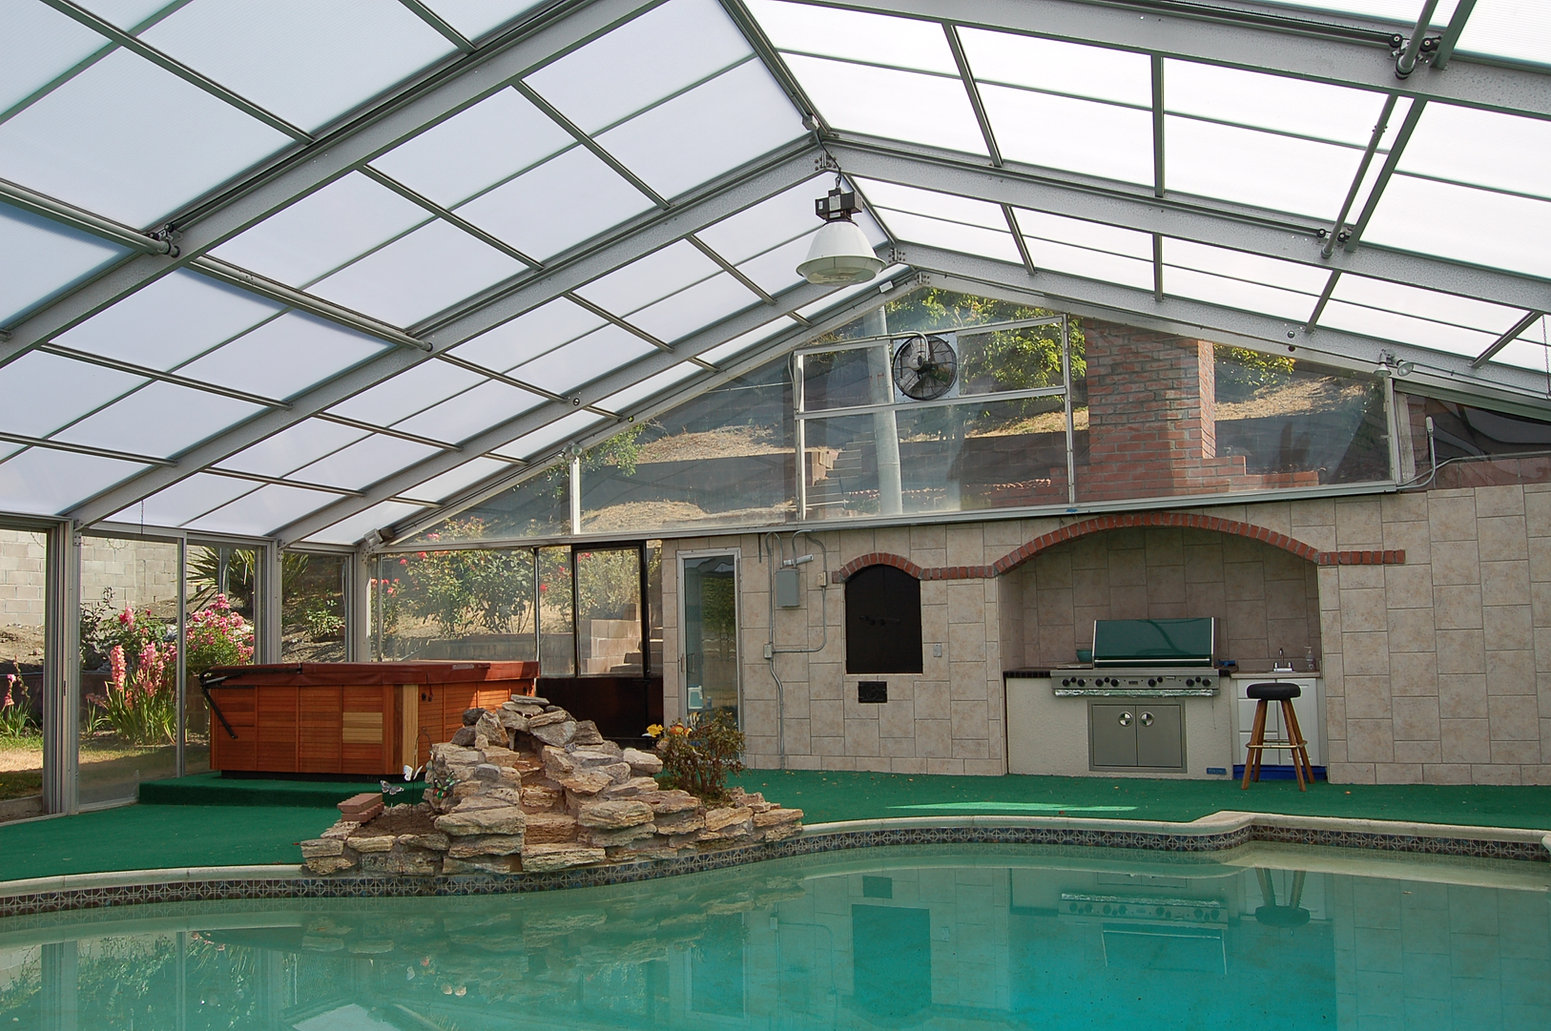 Buena vista sunrooms sunrooms greenhouses skylights - Swimming pool enclosures ...